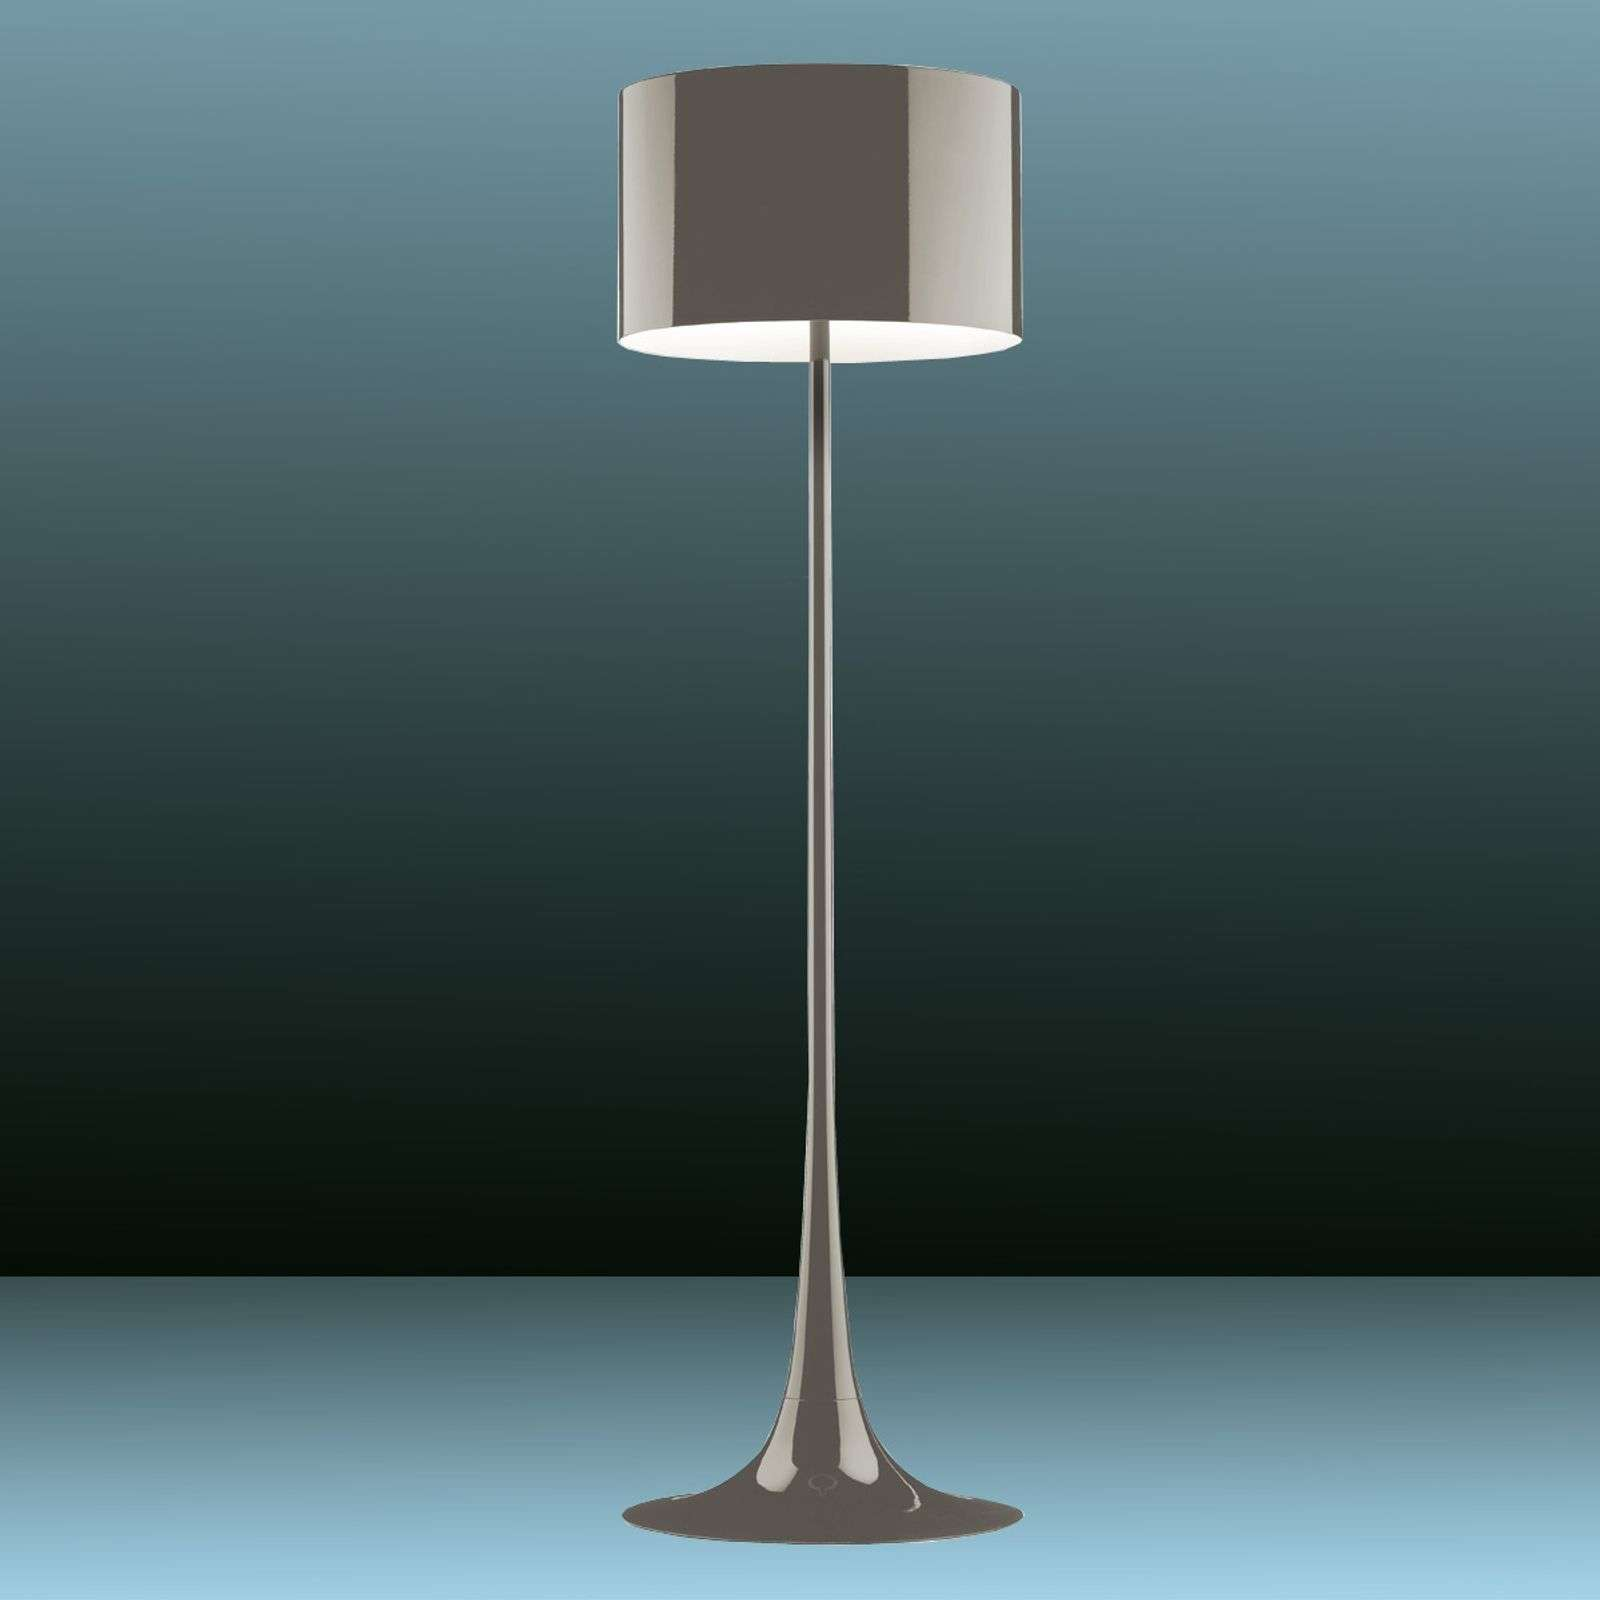 Lampadaire Spun Light F by FLOS brun